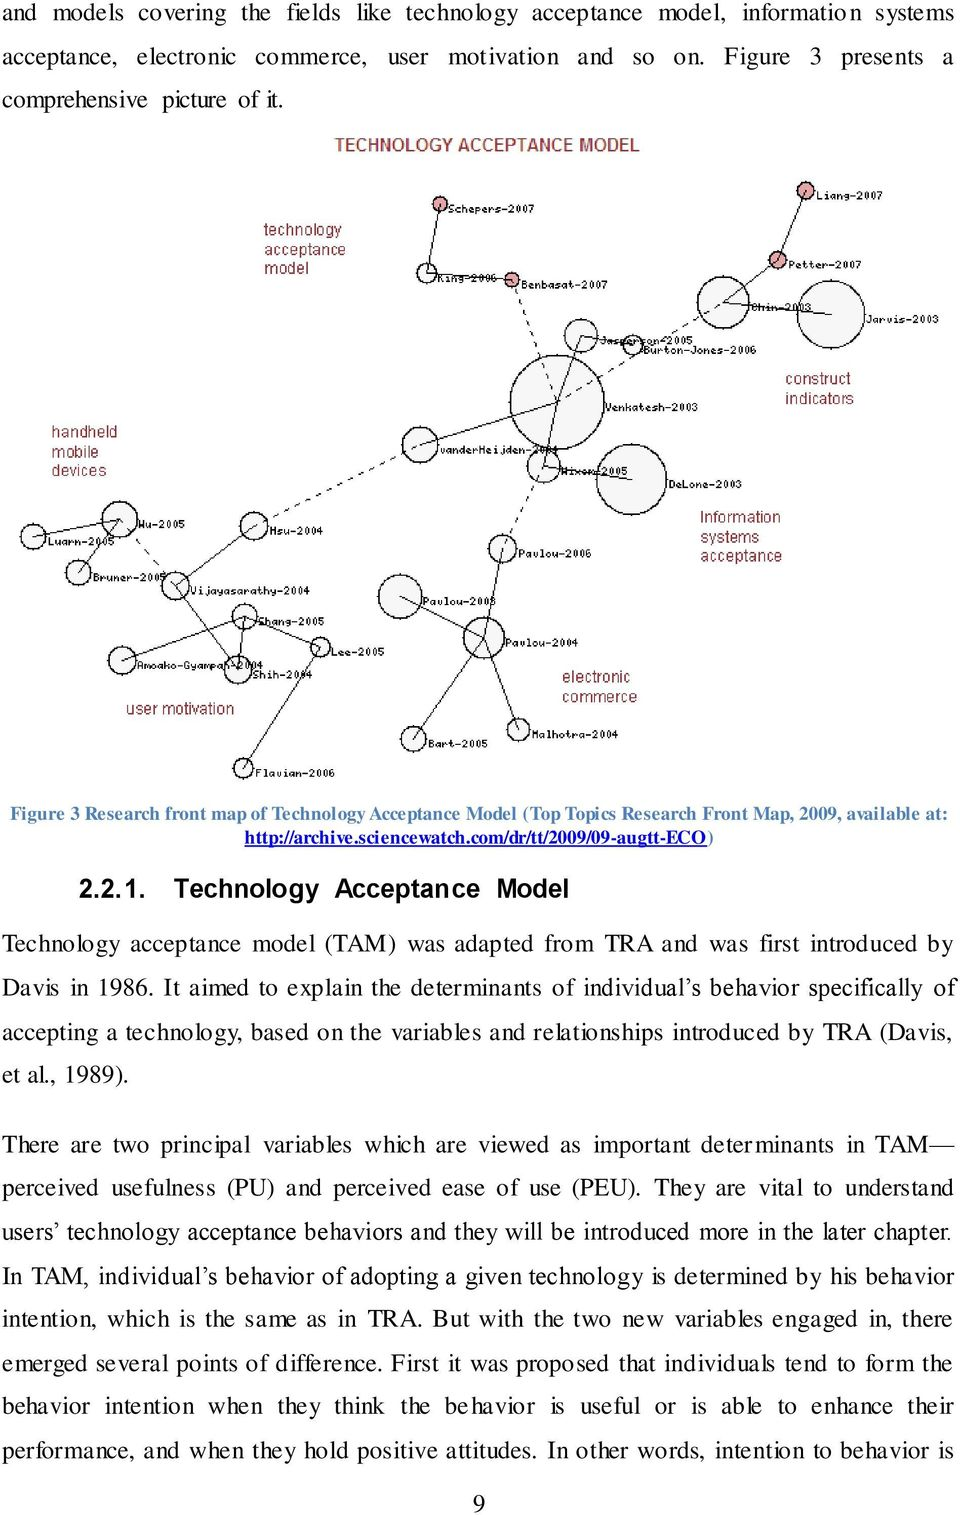 Technology Acceptance Model Technology acceptance model (TAM) was adapted from TRA and was first introduced by Davis in 1986.